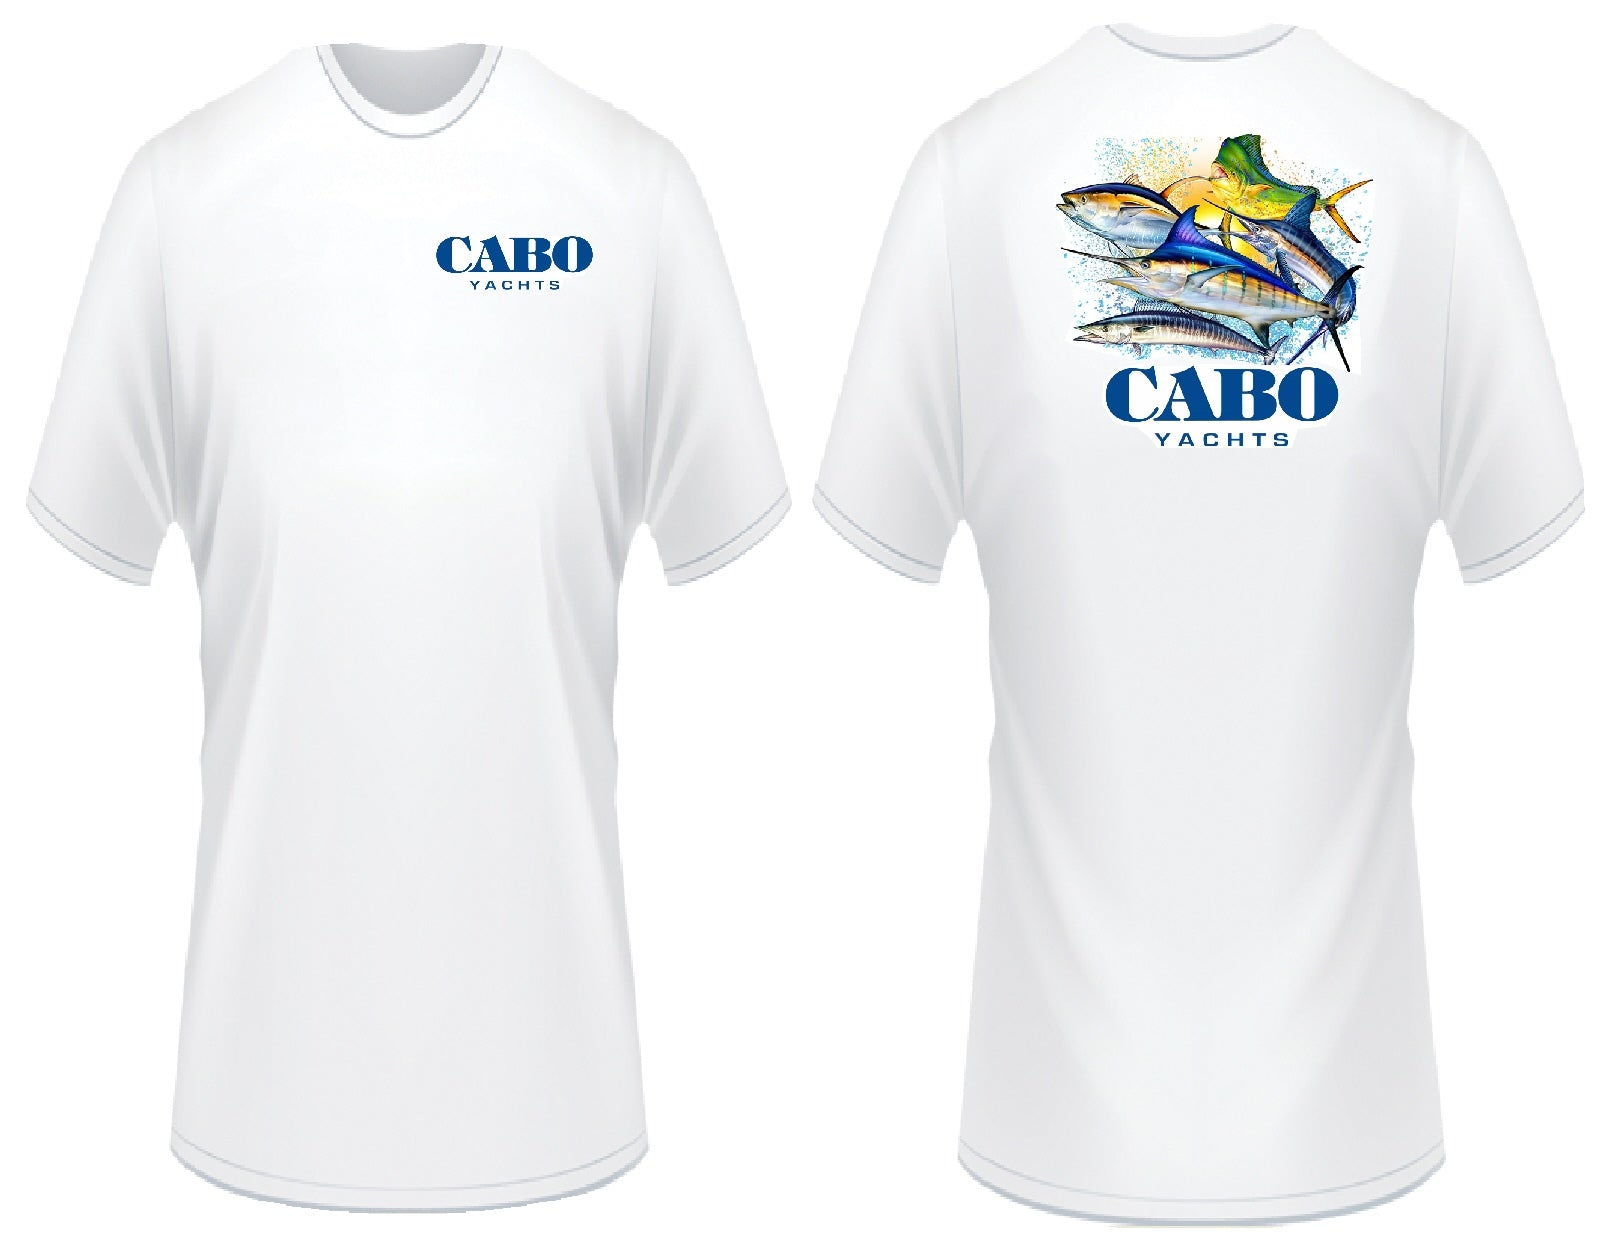 Cabo Yachts Ocean T-Shirt